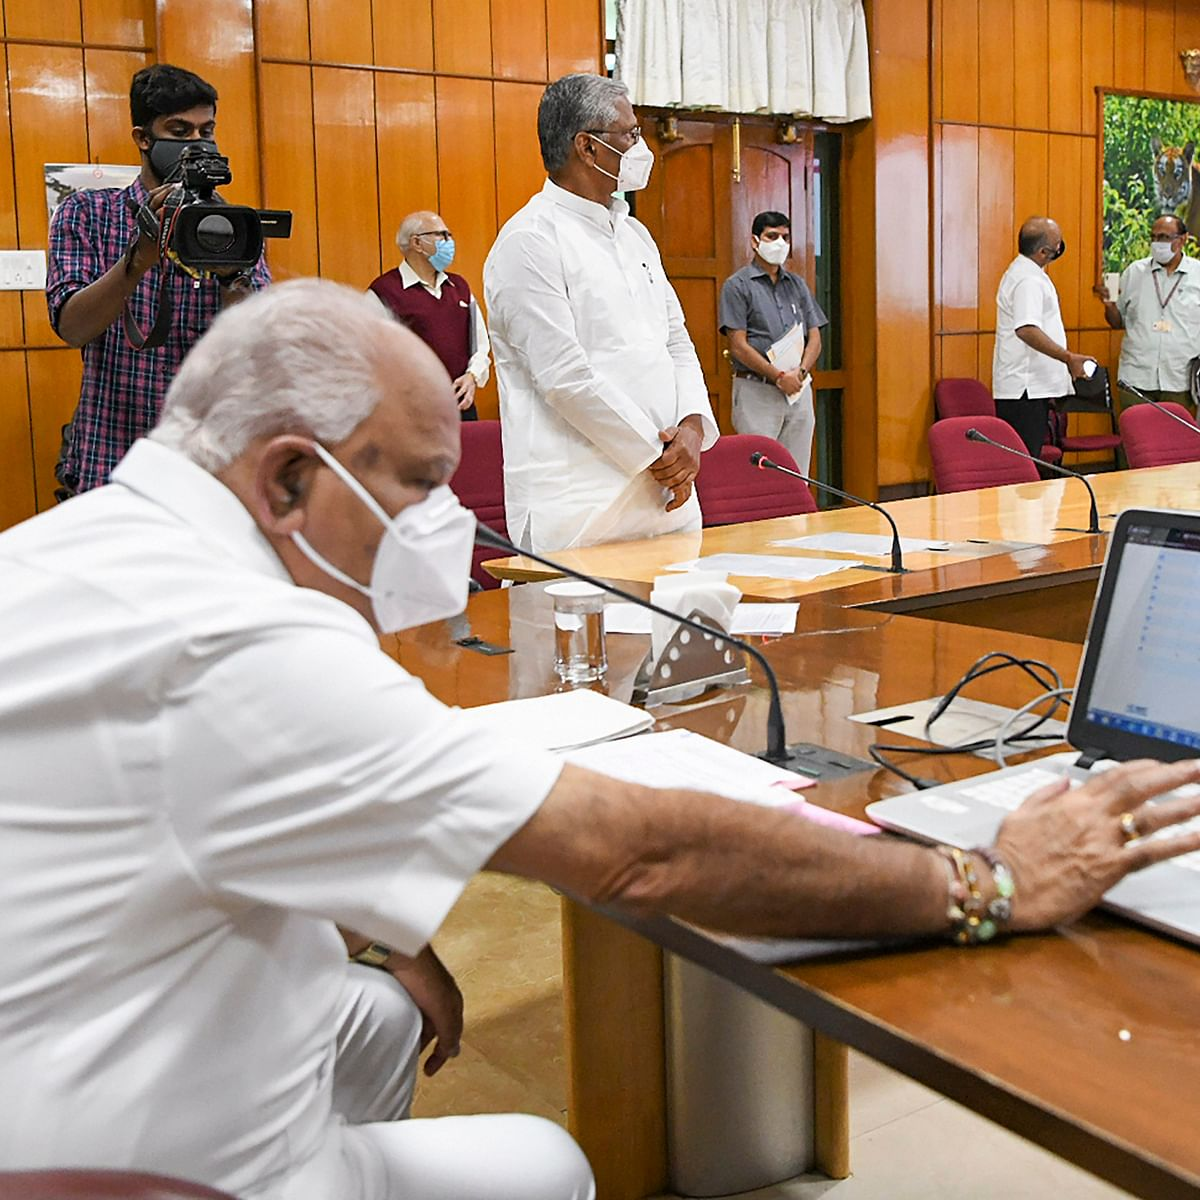 Karnataka CM B S Yediyurappa under home quaranatine after staff test positive for COVID-19